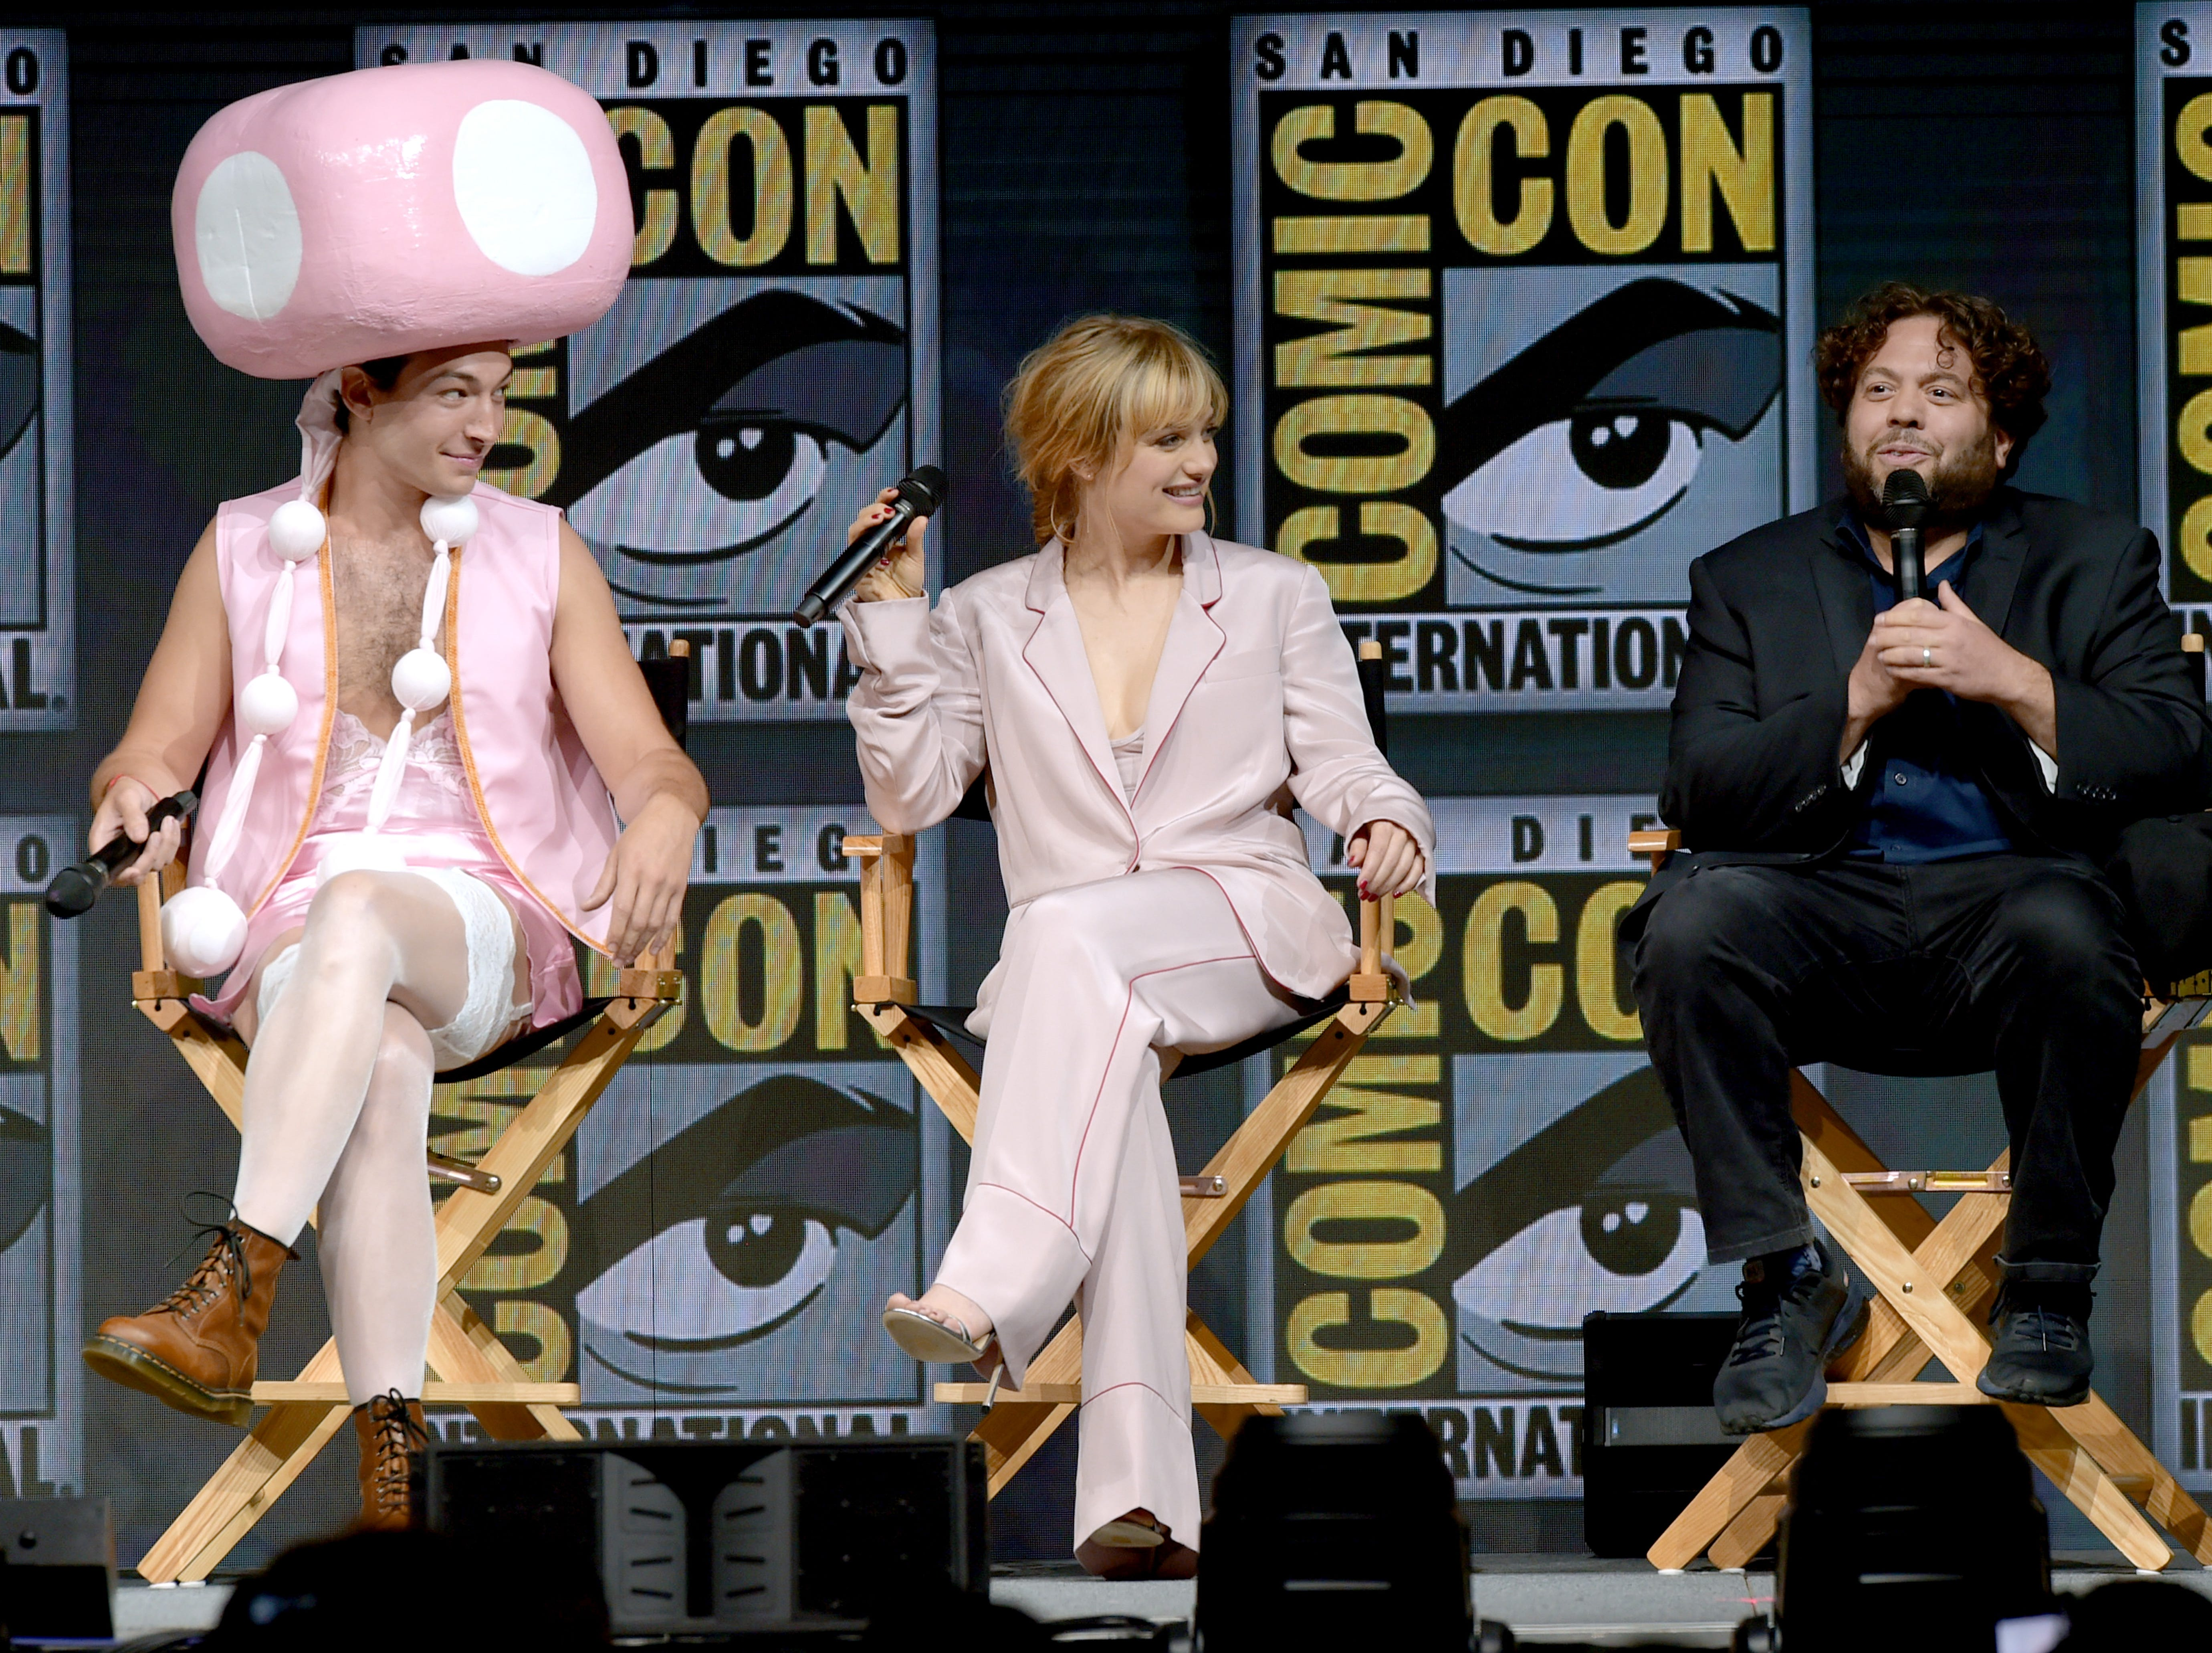 SAN DIEGO, CA - JULY 21:  (L-R) Ezra Miller, Alison Sudol and Dan Fogler speak onstage at the Warner Bros. theatrical panel during Comic-Con International 2018 at San Diego Convention Center on July 21, 2018 in San Diego, California.  (Photo by Kevin Winter/Getty Images) ORG XMIT: 775194454 ORIG FILE ID: 1003297084